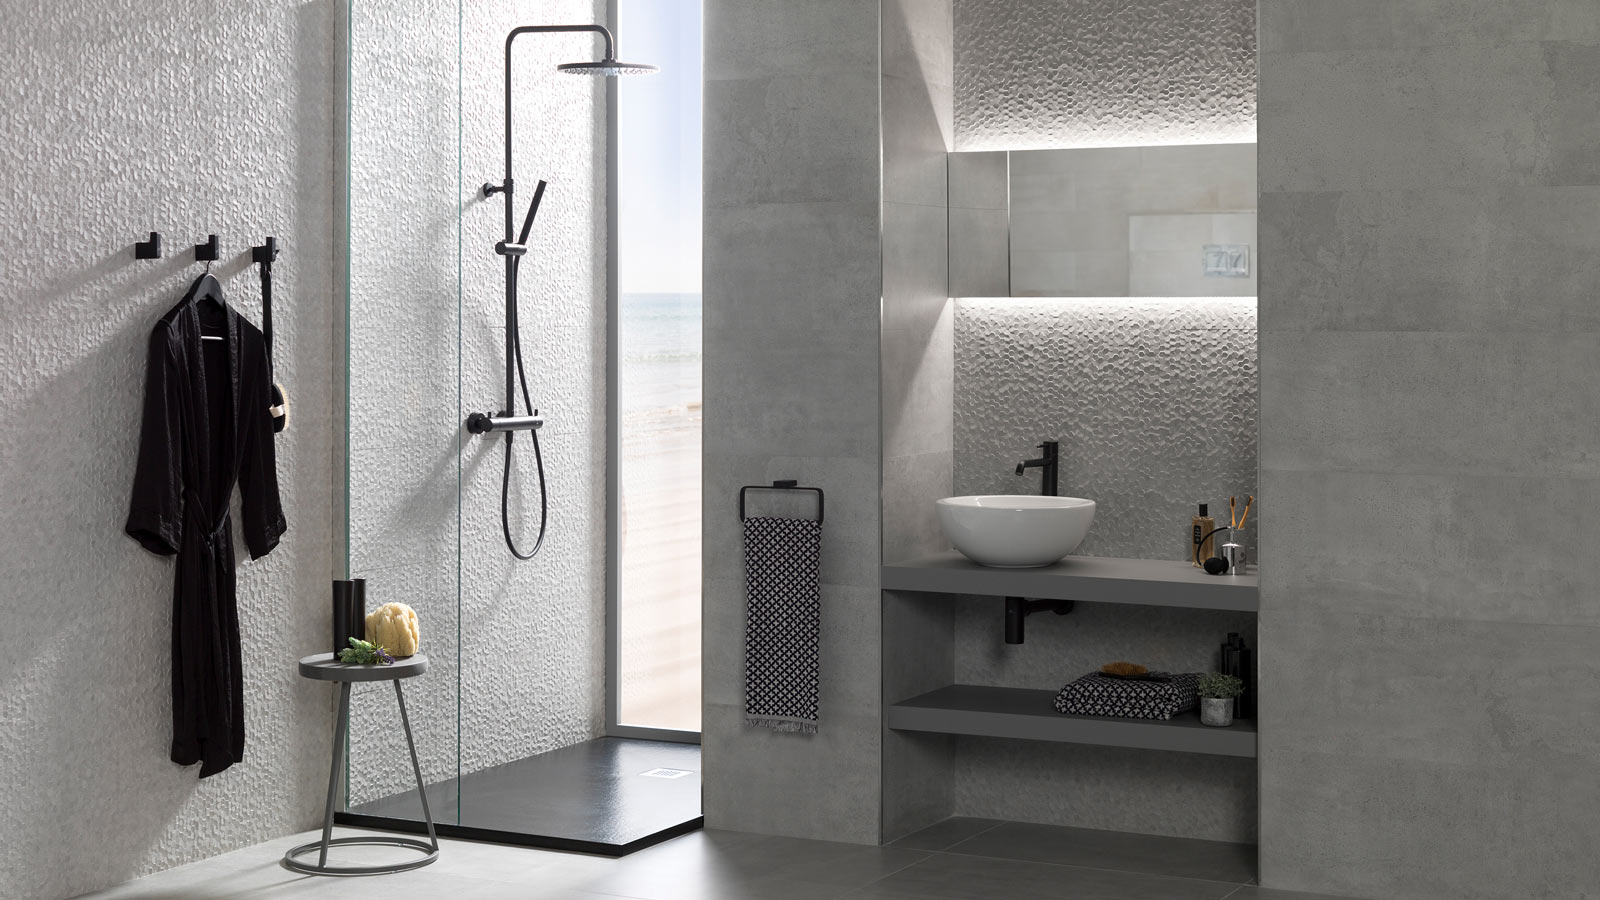 'Effortless' by Noken: the formula for designing comfortable and sustainable hotel bathrooms